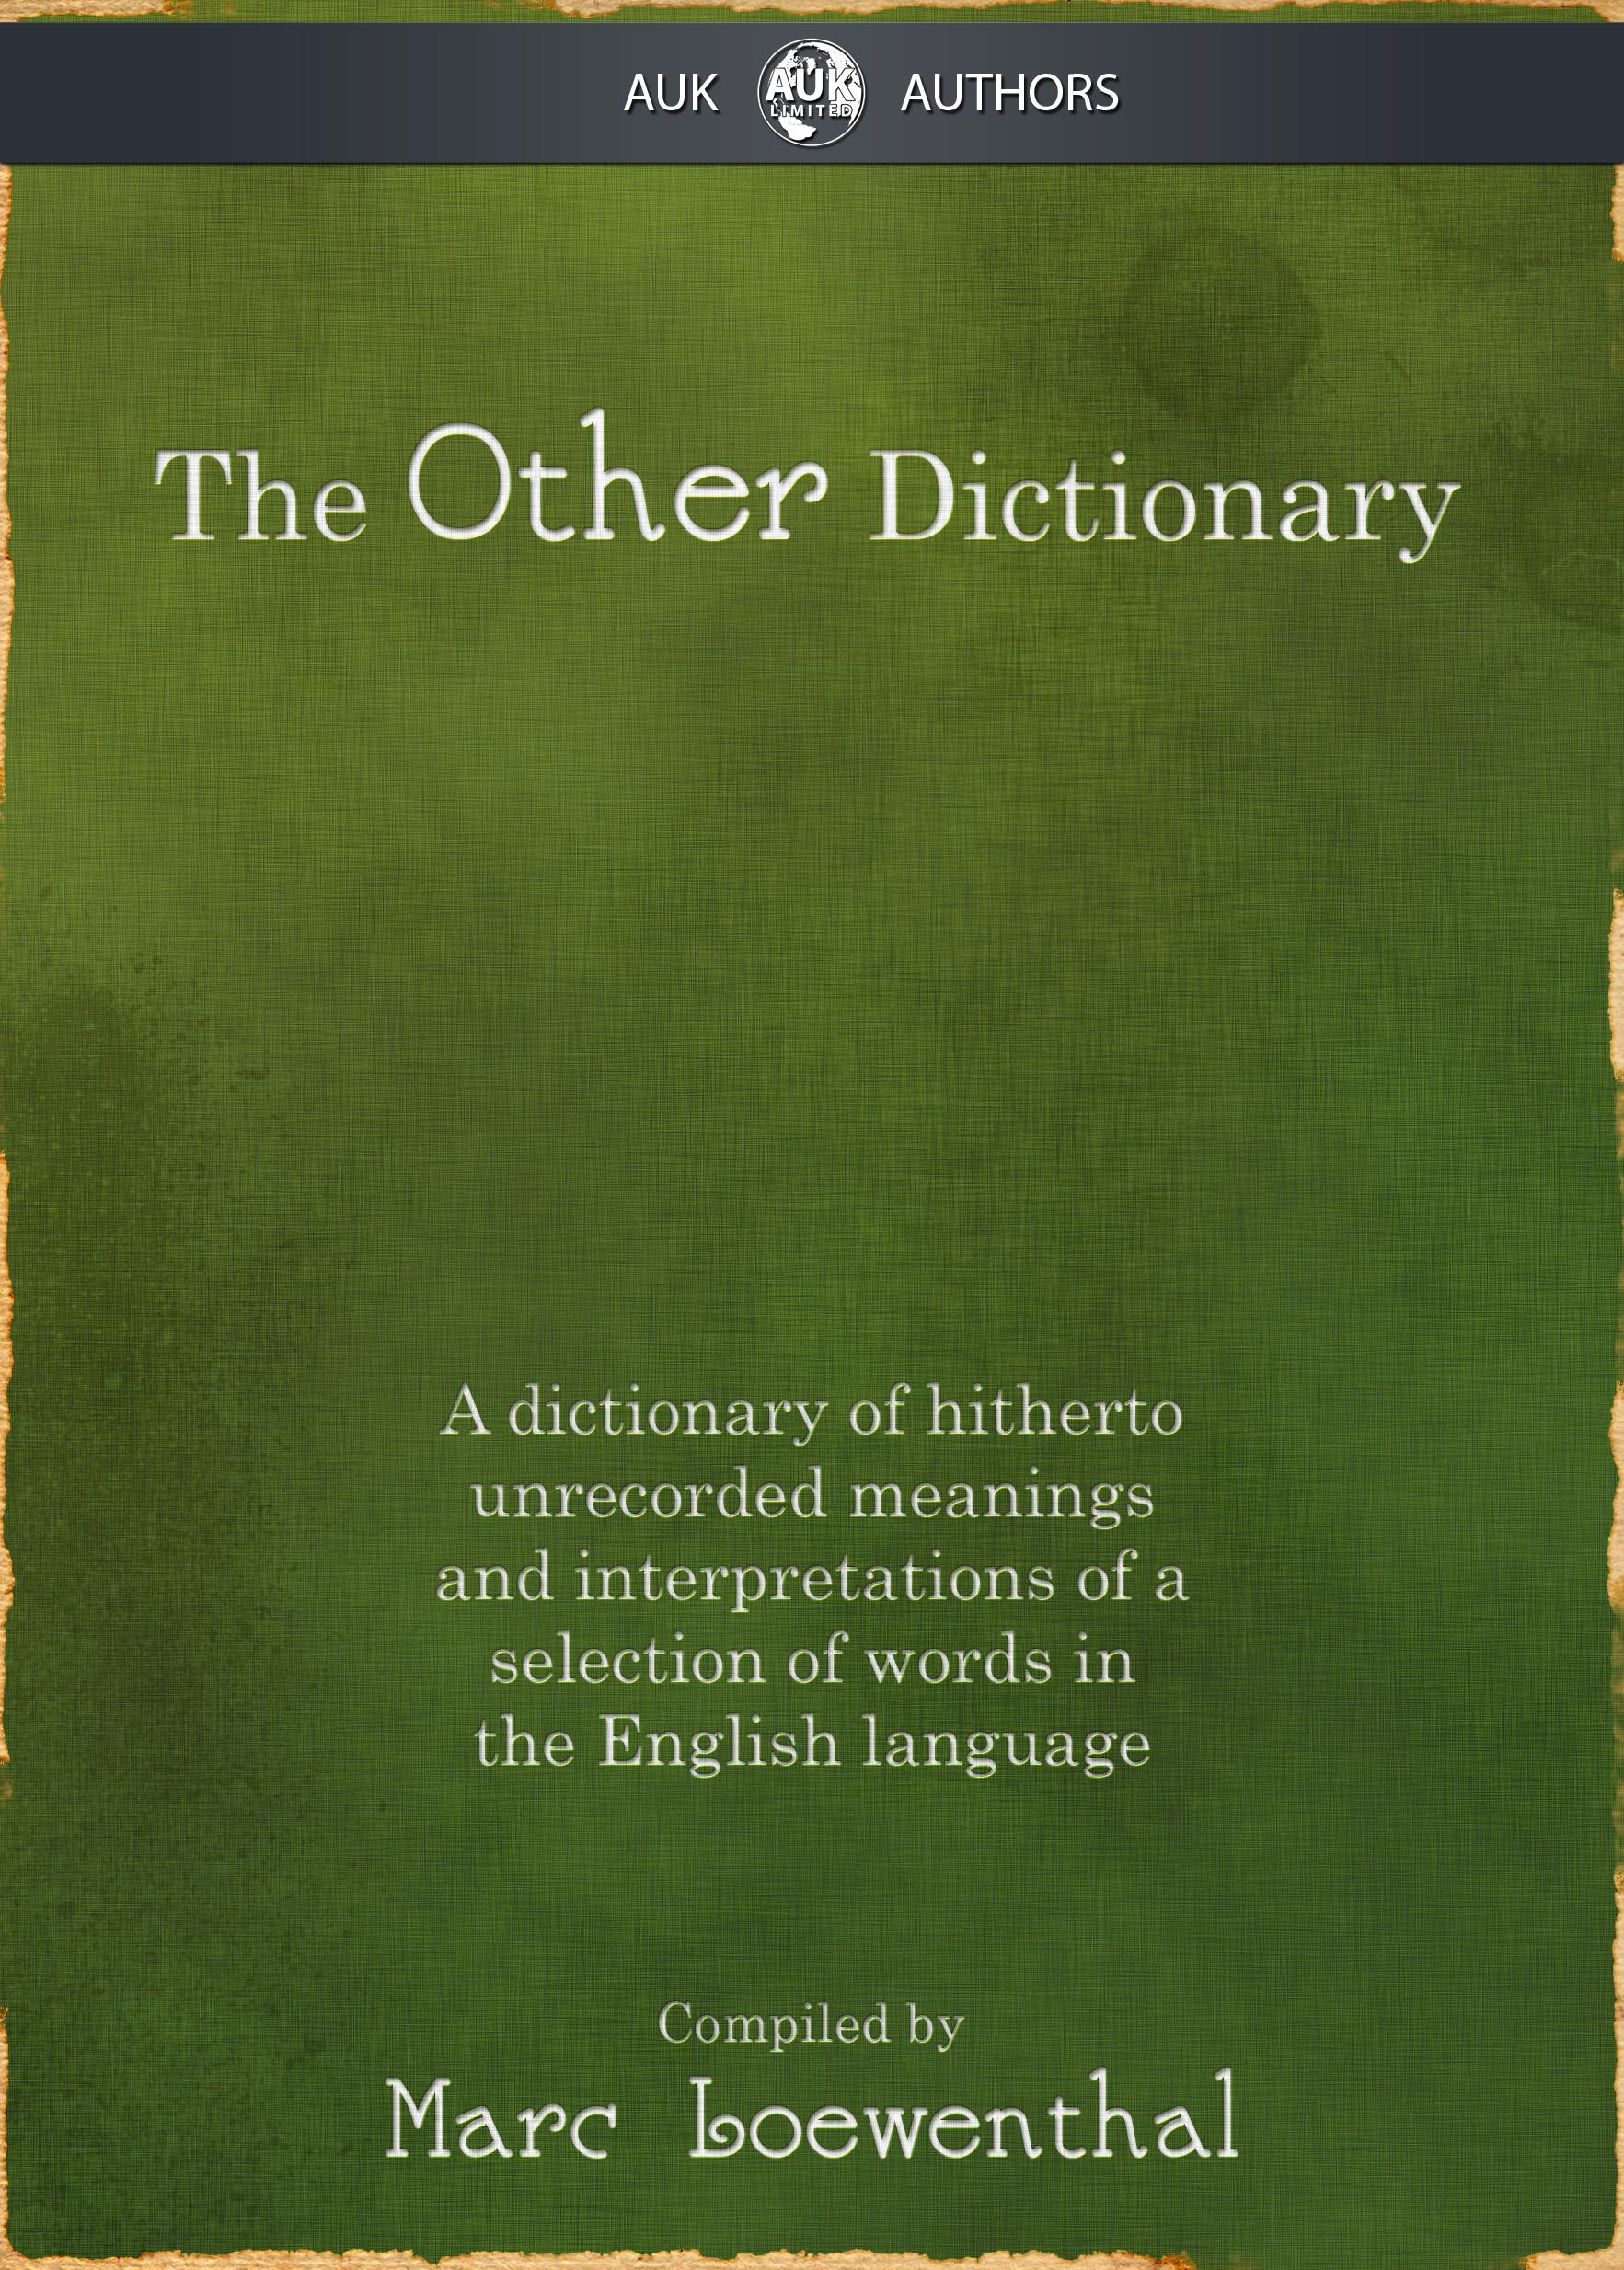 The Other Dictionary: A dictionary of hitherto unrecorded meanings and interpretations of a selection of words in the English language EB9781849891387